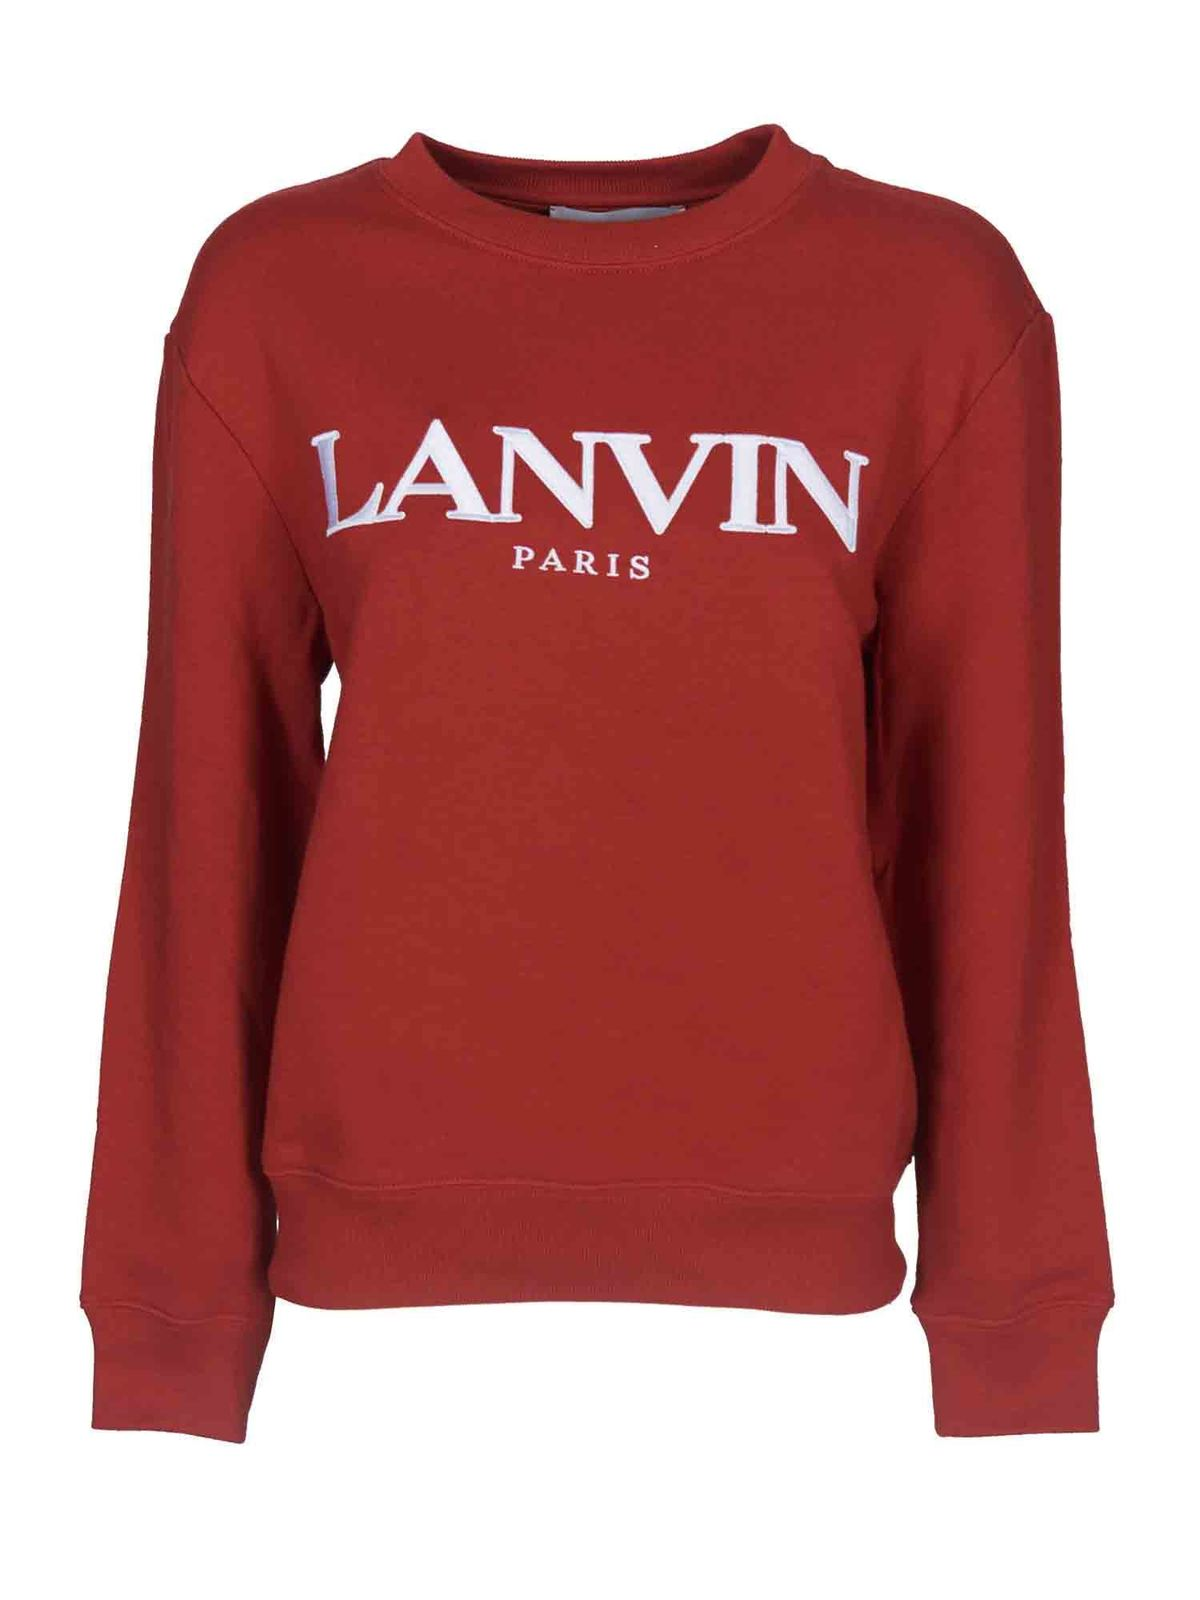 Lanvin Cottons EMBROIDERED LOGO SWEATSHIRT IN BRICK COLOR